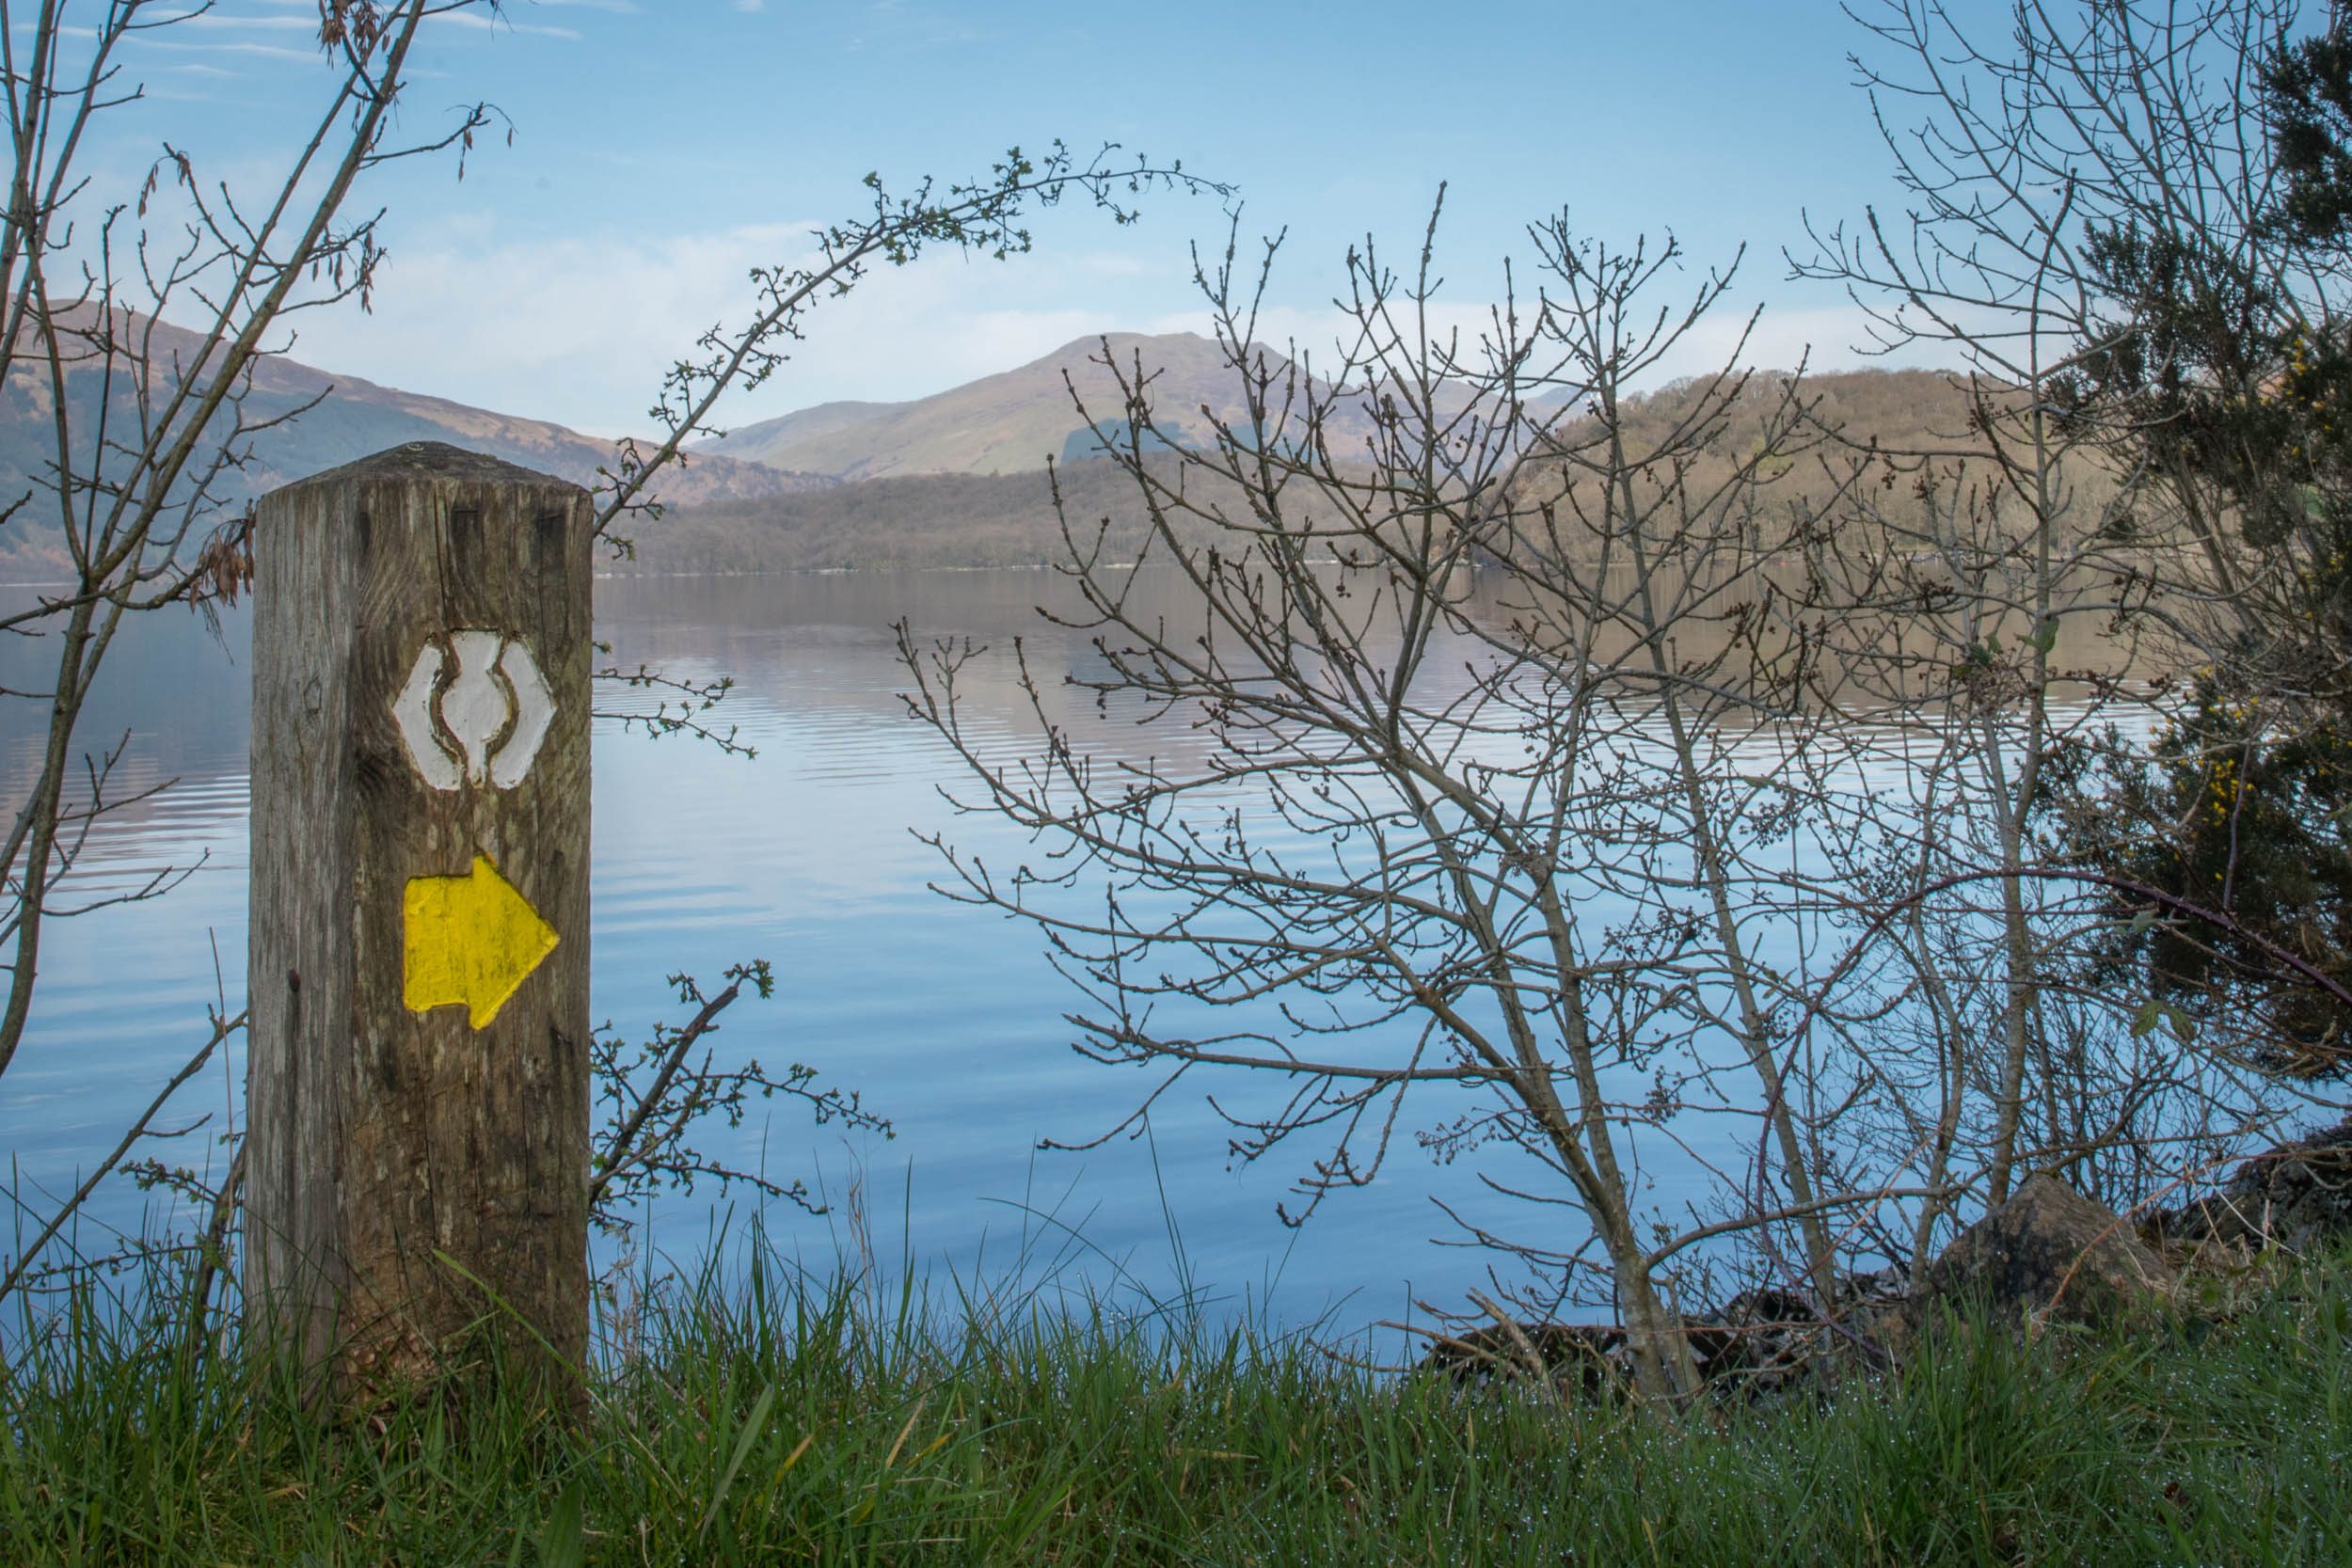 West Highland Way Route Marker